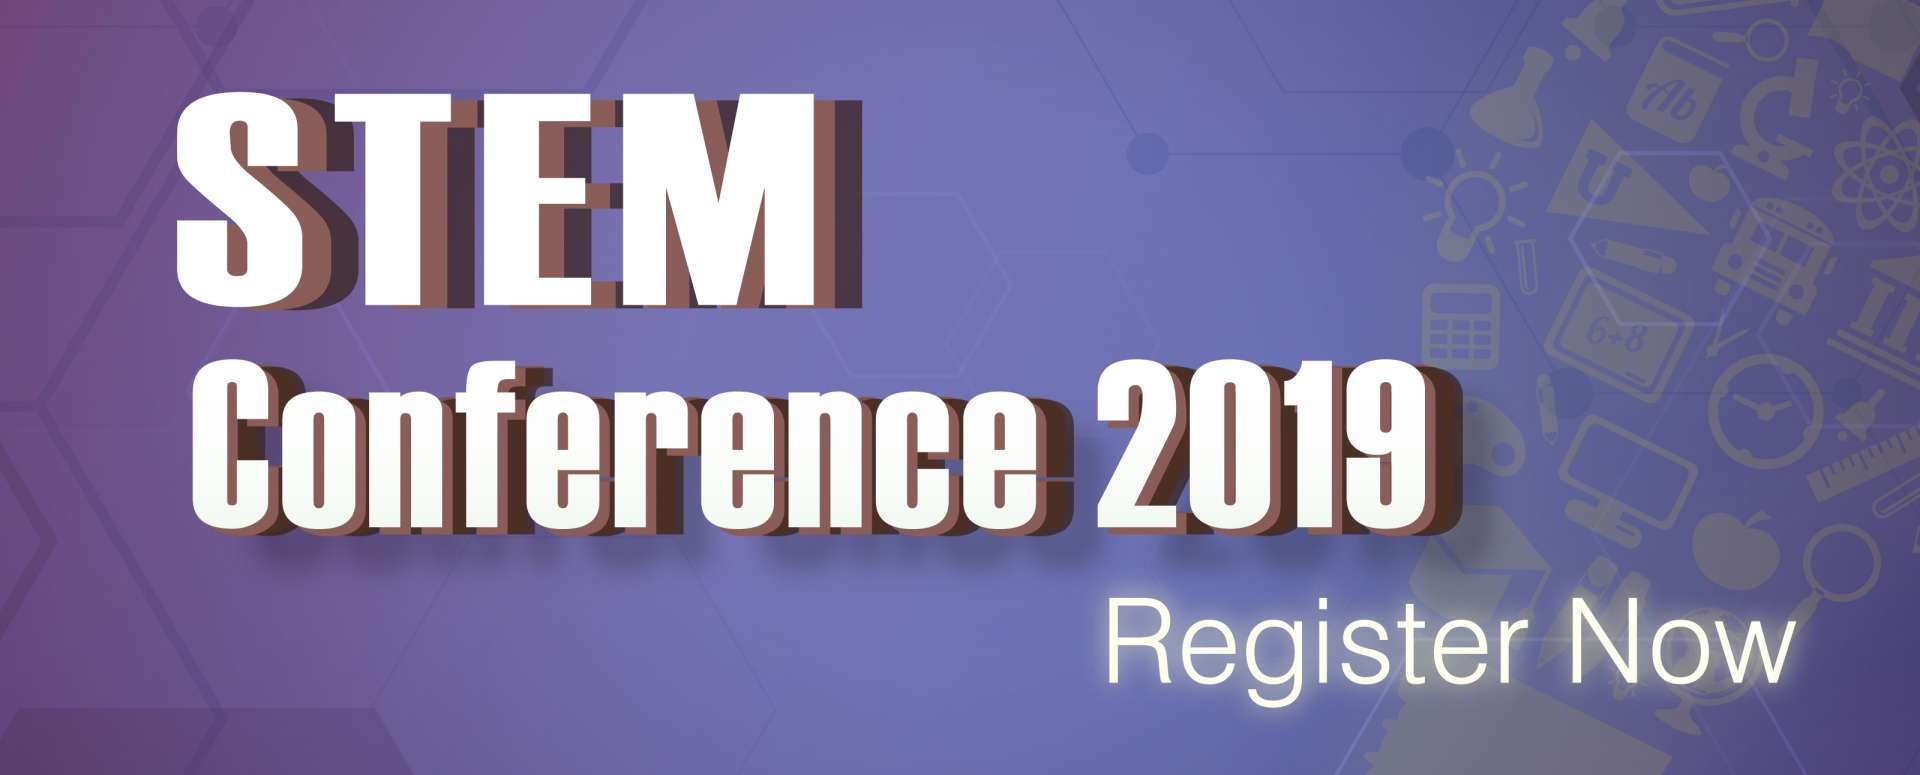 STEM_Conference_2019_768X310-01